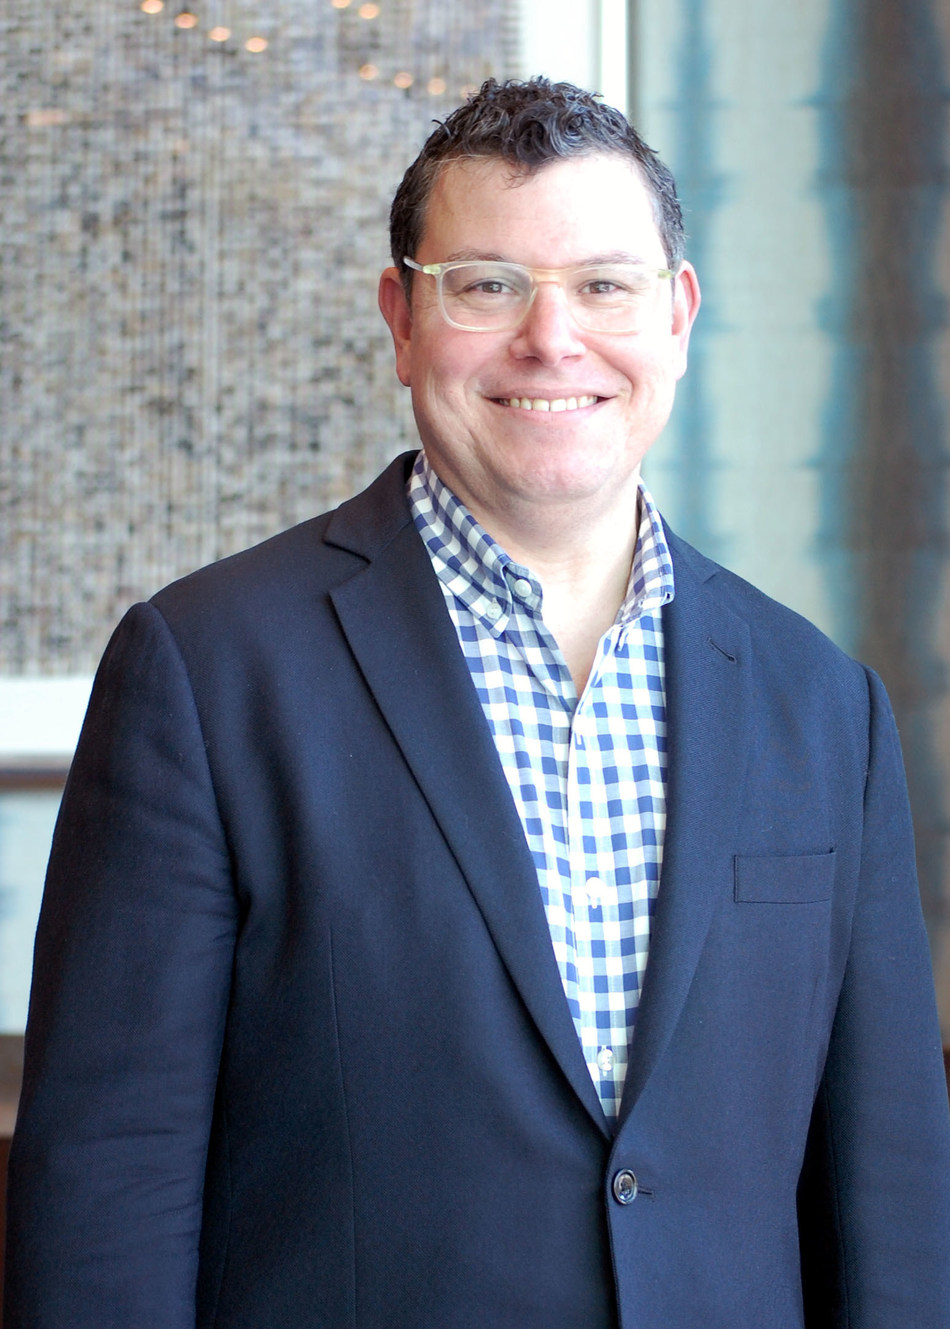 Anthony Conversa, Chief Growth Officer